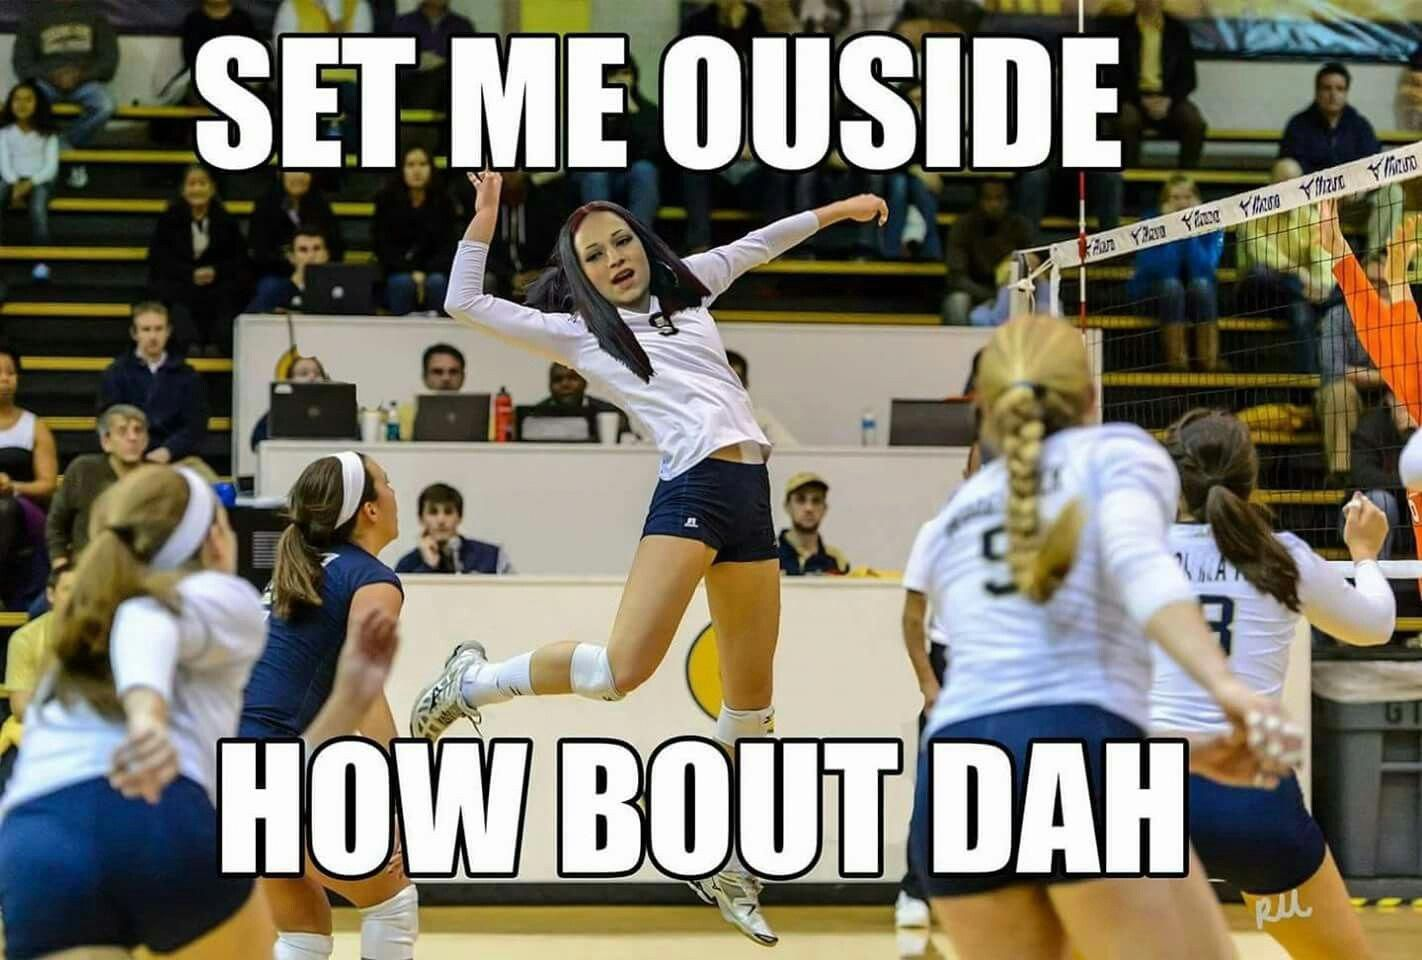 I M Pretty Sure This Meme Isn T Going Away Anytime Soon Credit Volleyball Meme Anytime Credit Going Isnt M Sports Memes Volleyball Humor Sport Quotes